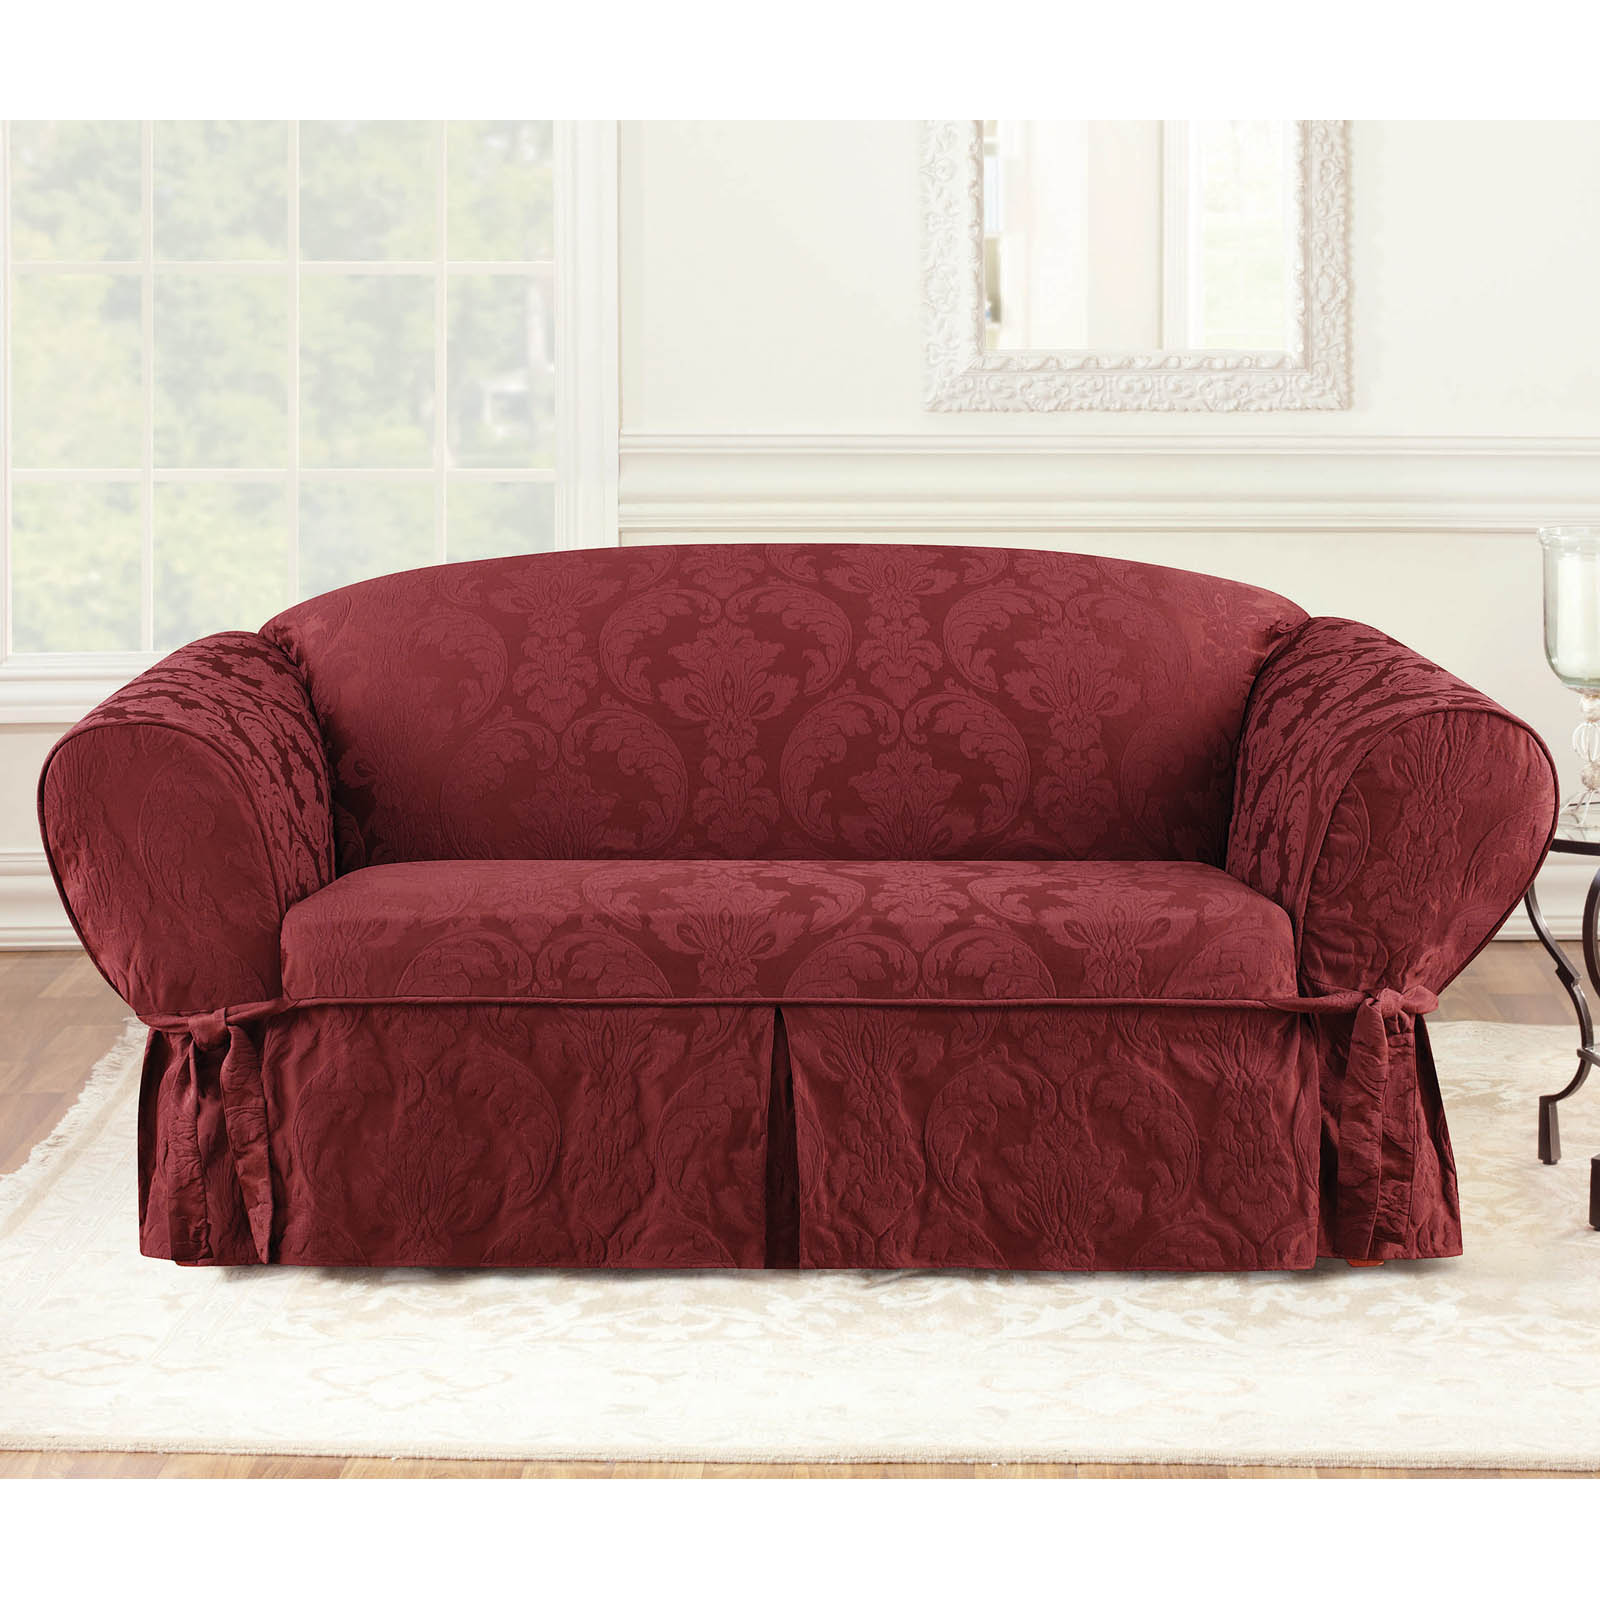 Sure Fit Matelasse Damask Sofa Cover